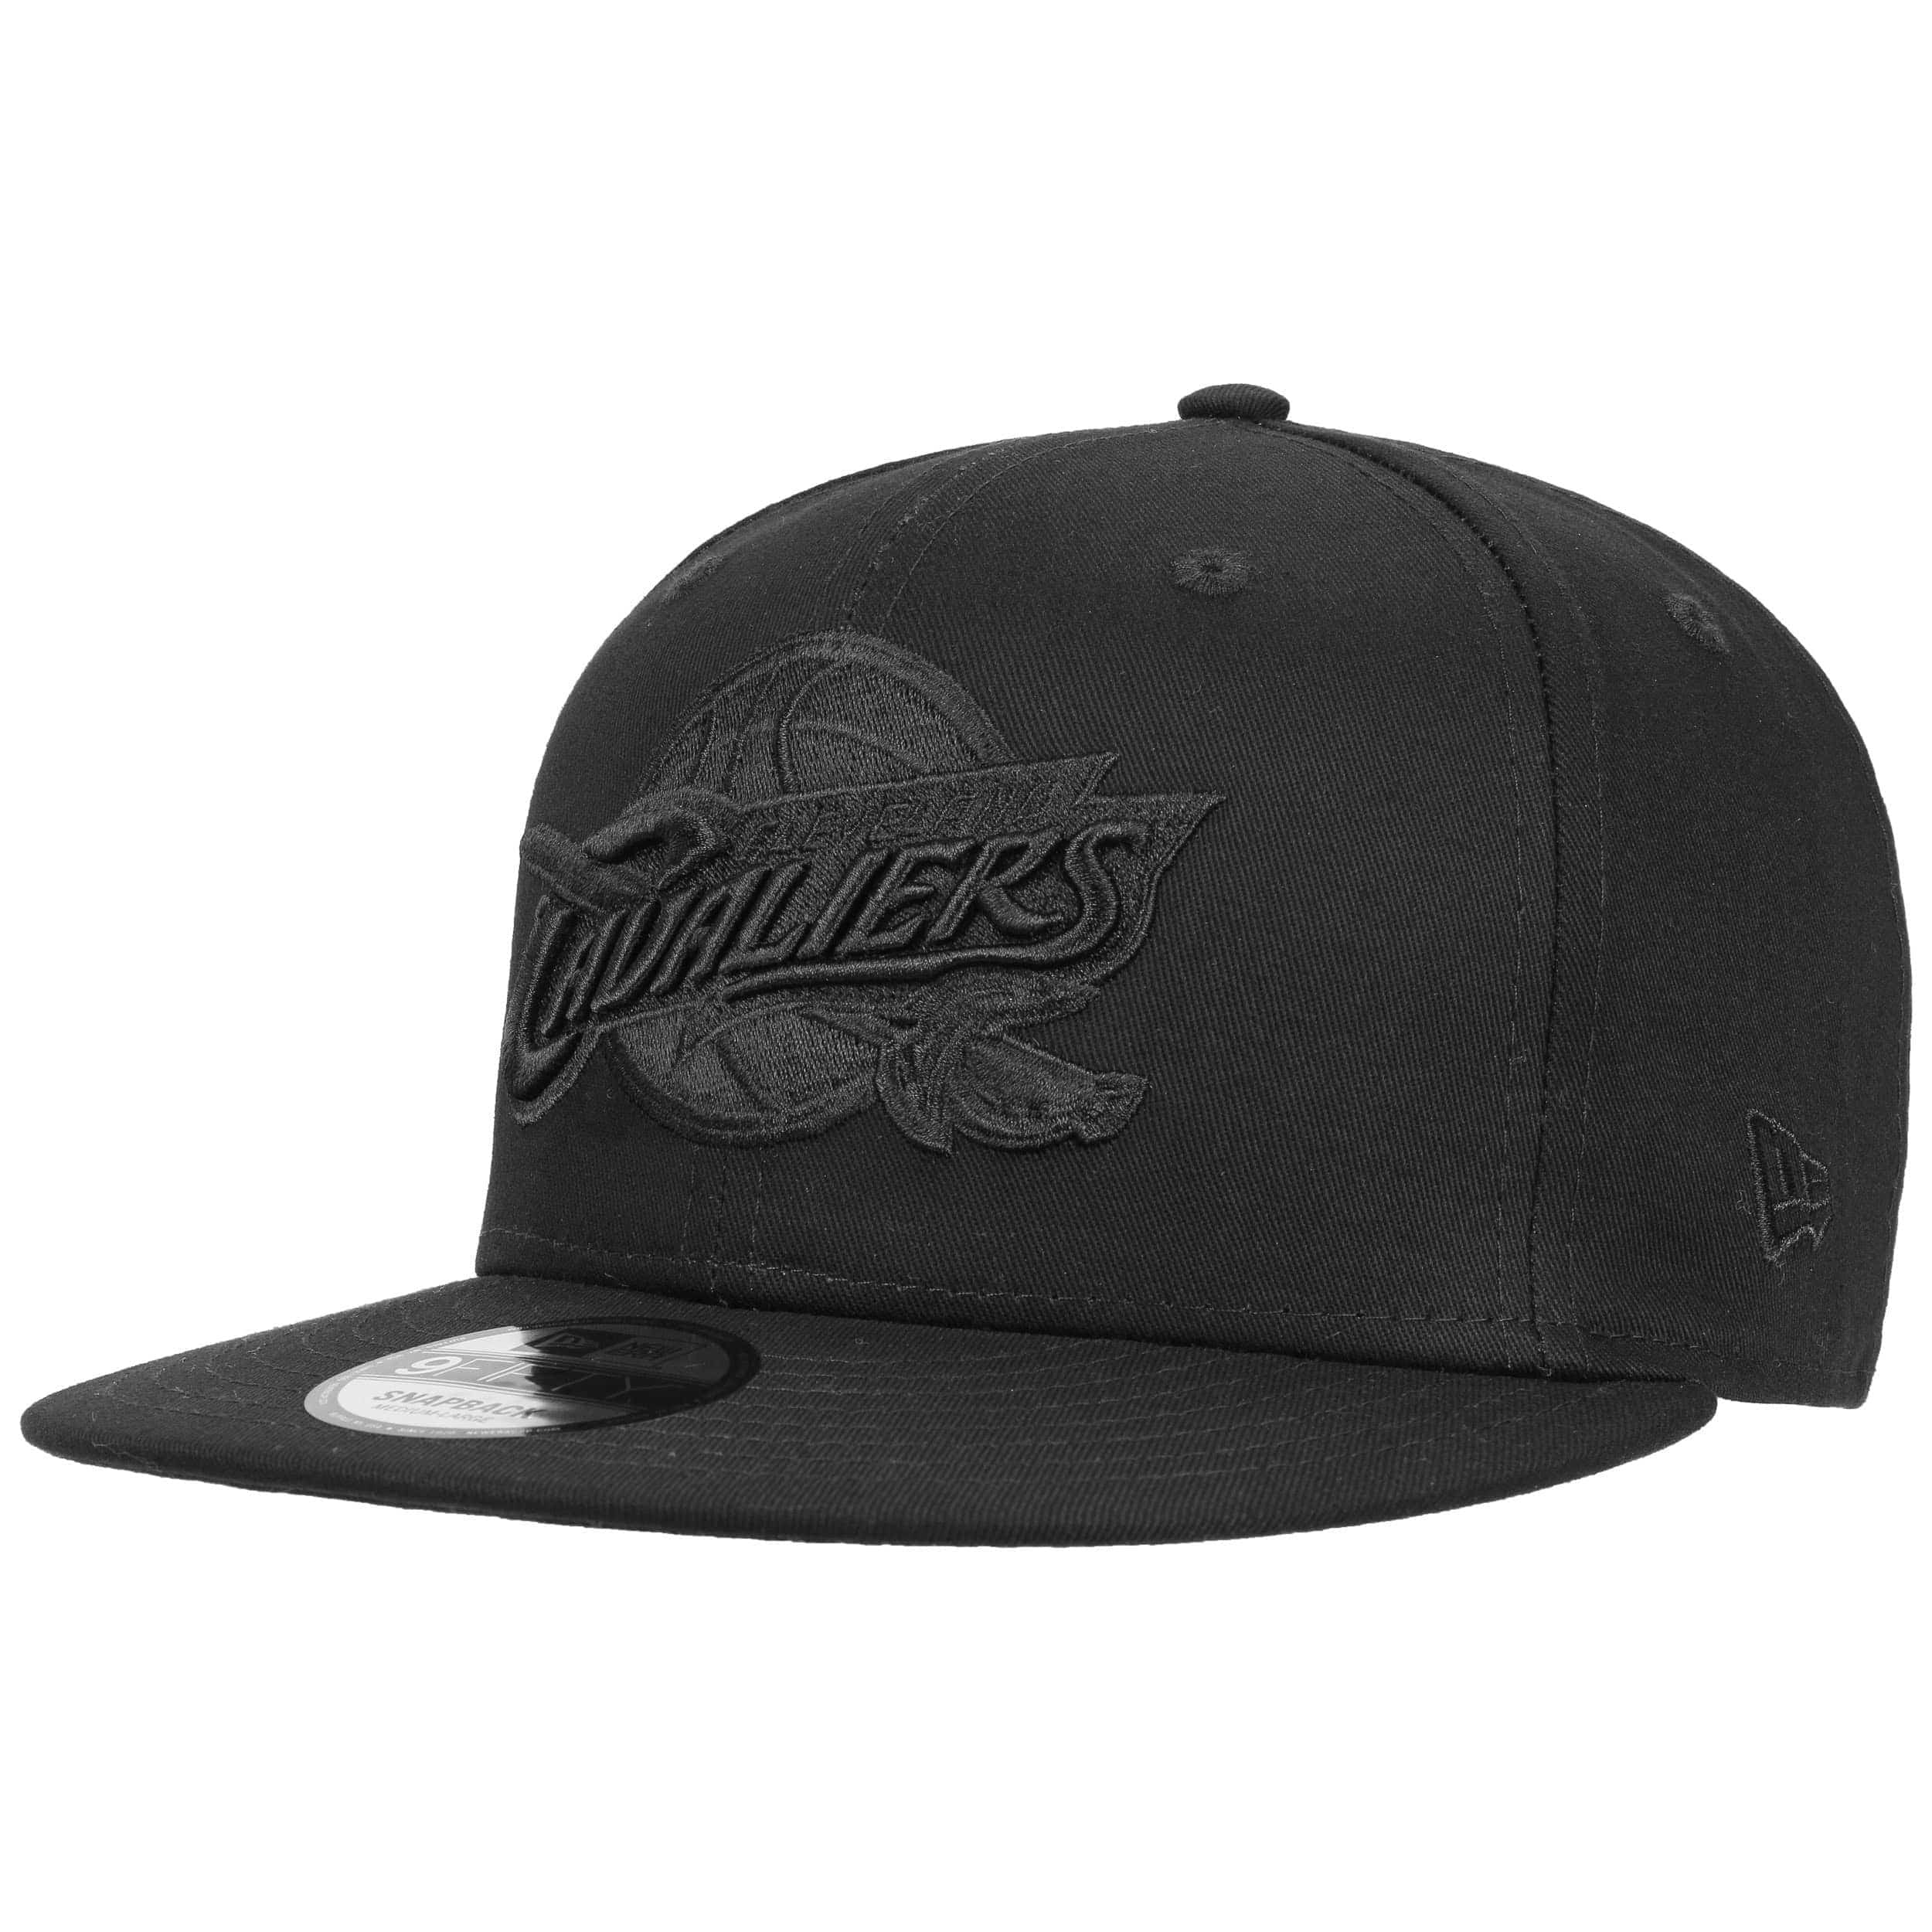 gorra 9fifty bob cleveland cavs by new era gorras. Black Bedroom Furniture Sets. Home Design Ideas